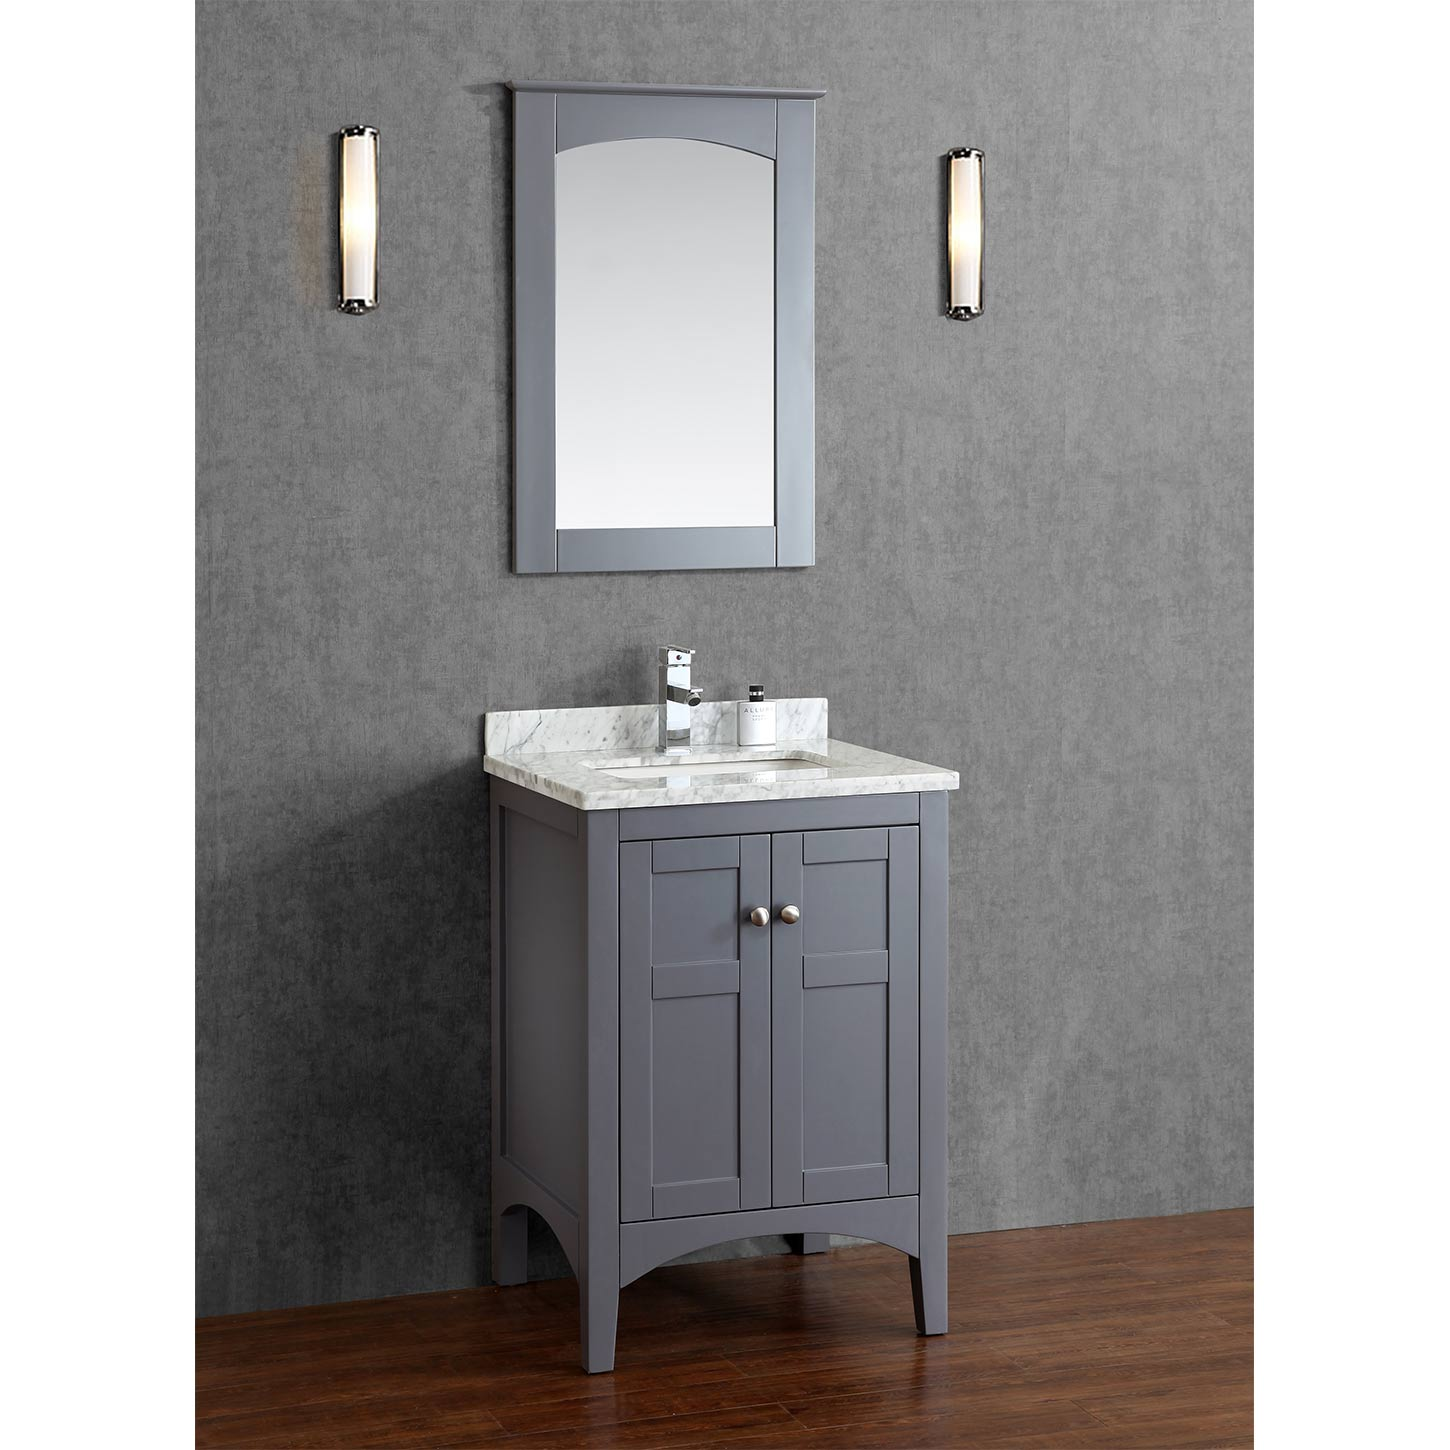 style decor with drawers one bathroom elegant shaker vanity door